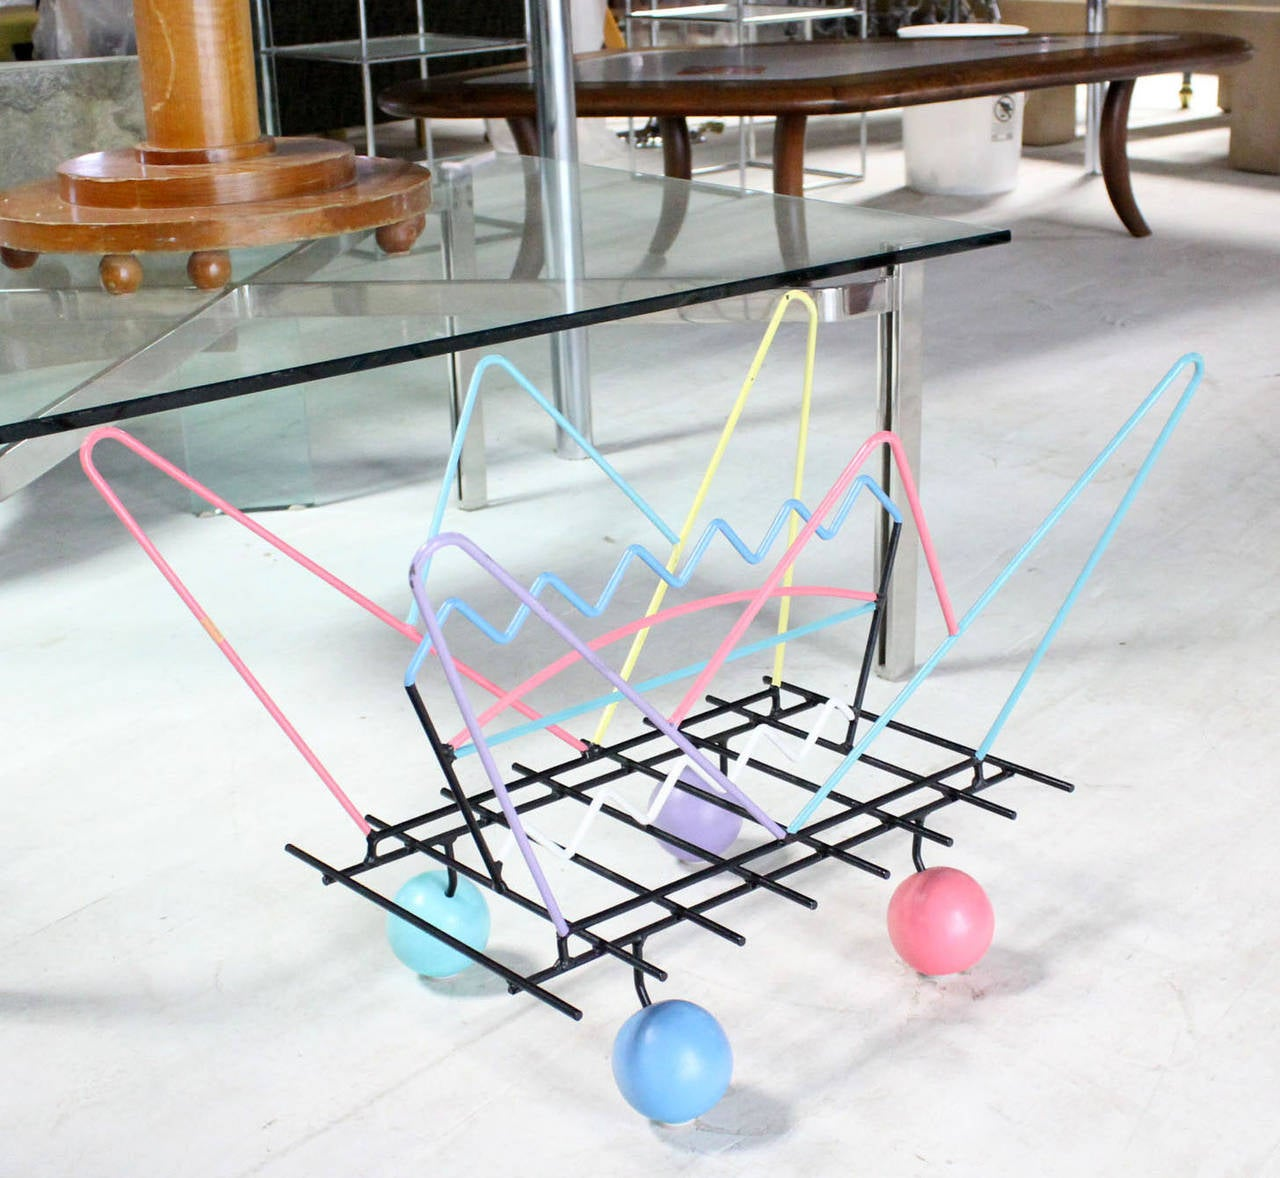 Memphis Style Art Magazine Rack Bent Wire In Excellent Condition For Sale In Blairstown, NJ